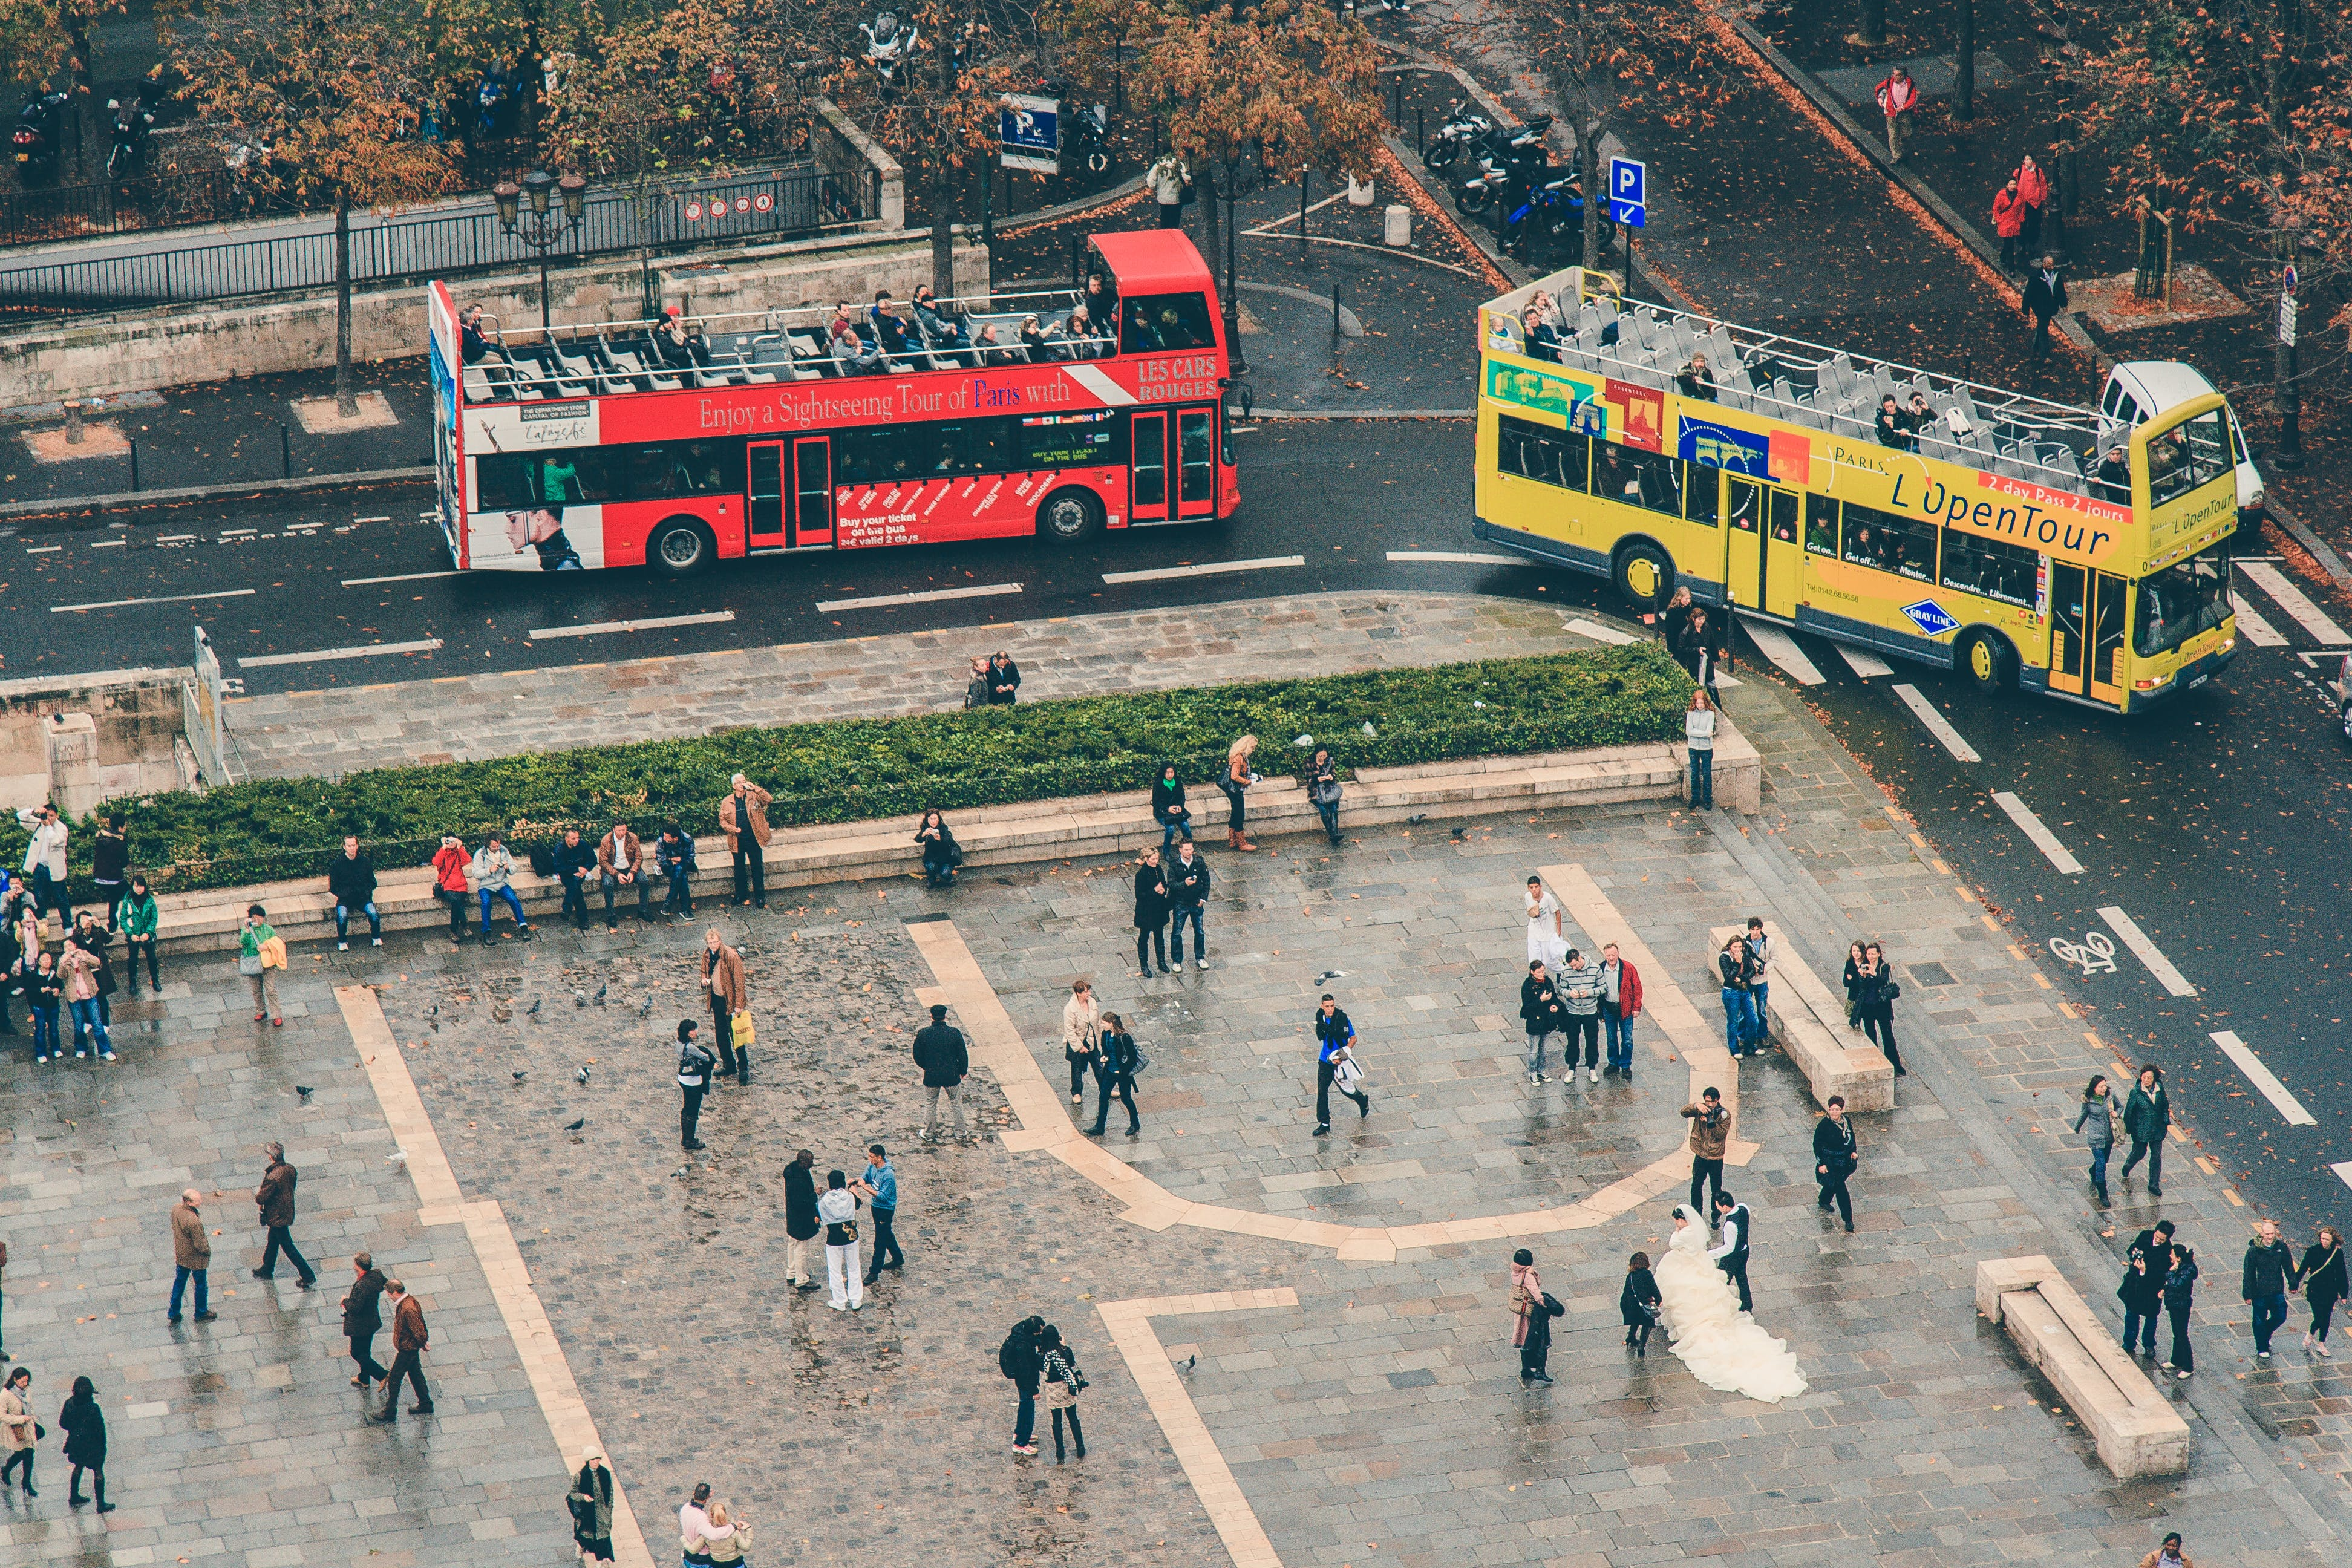 Red and Yellow Double Decker Buses on the Road